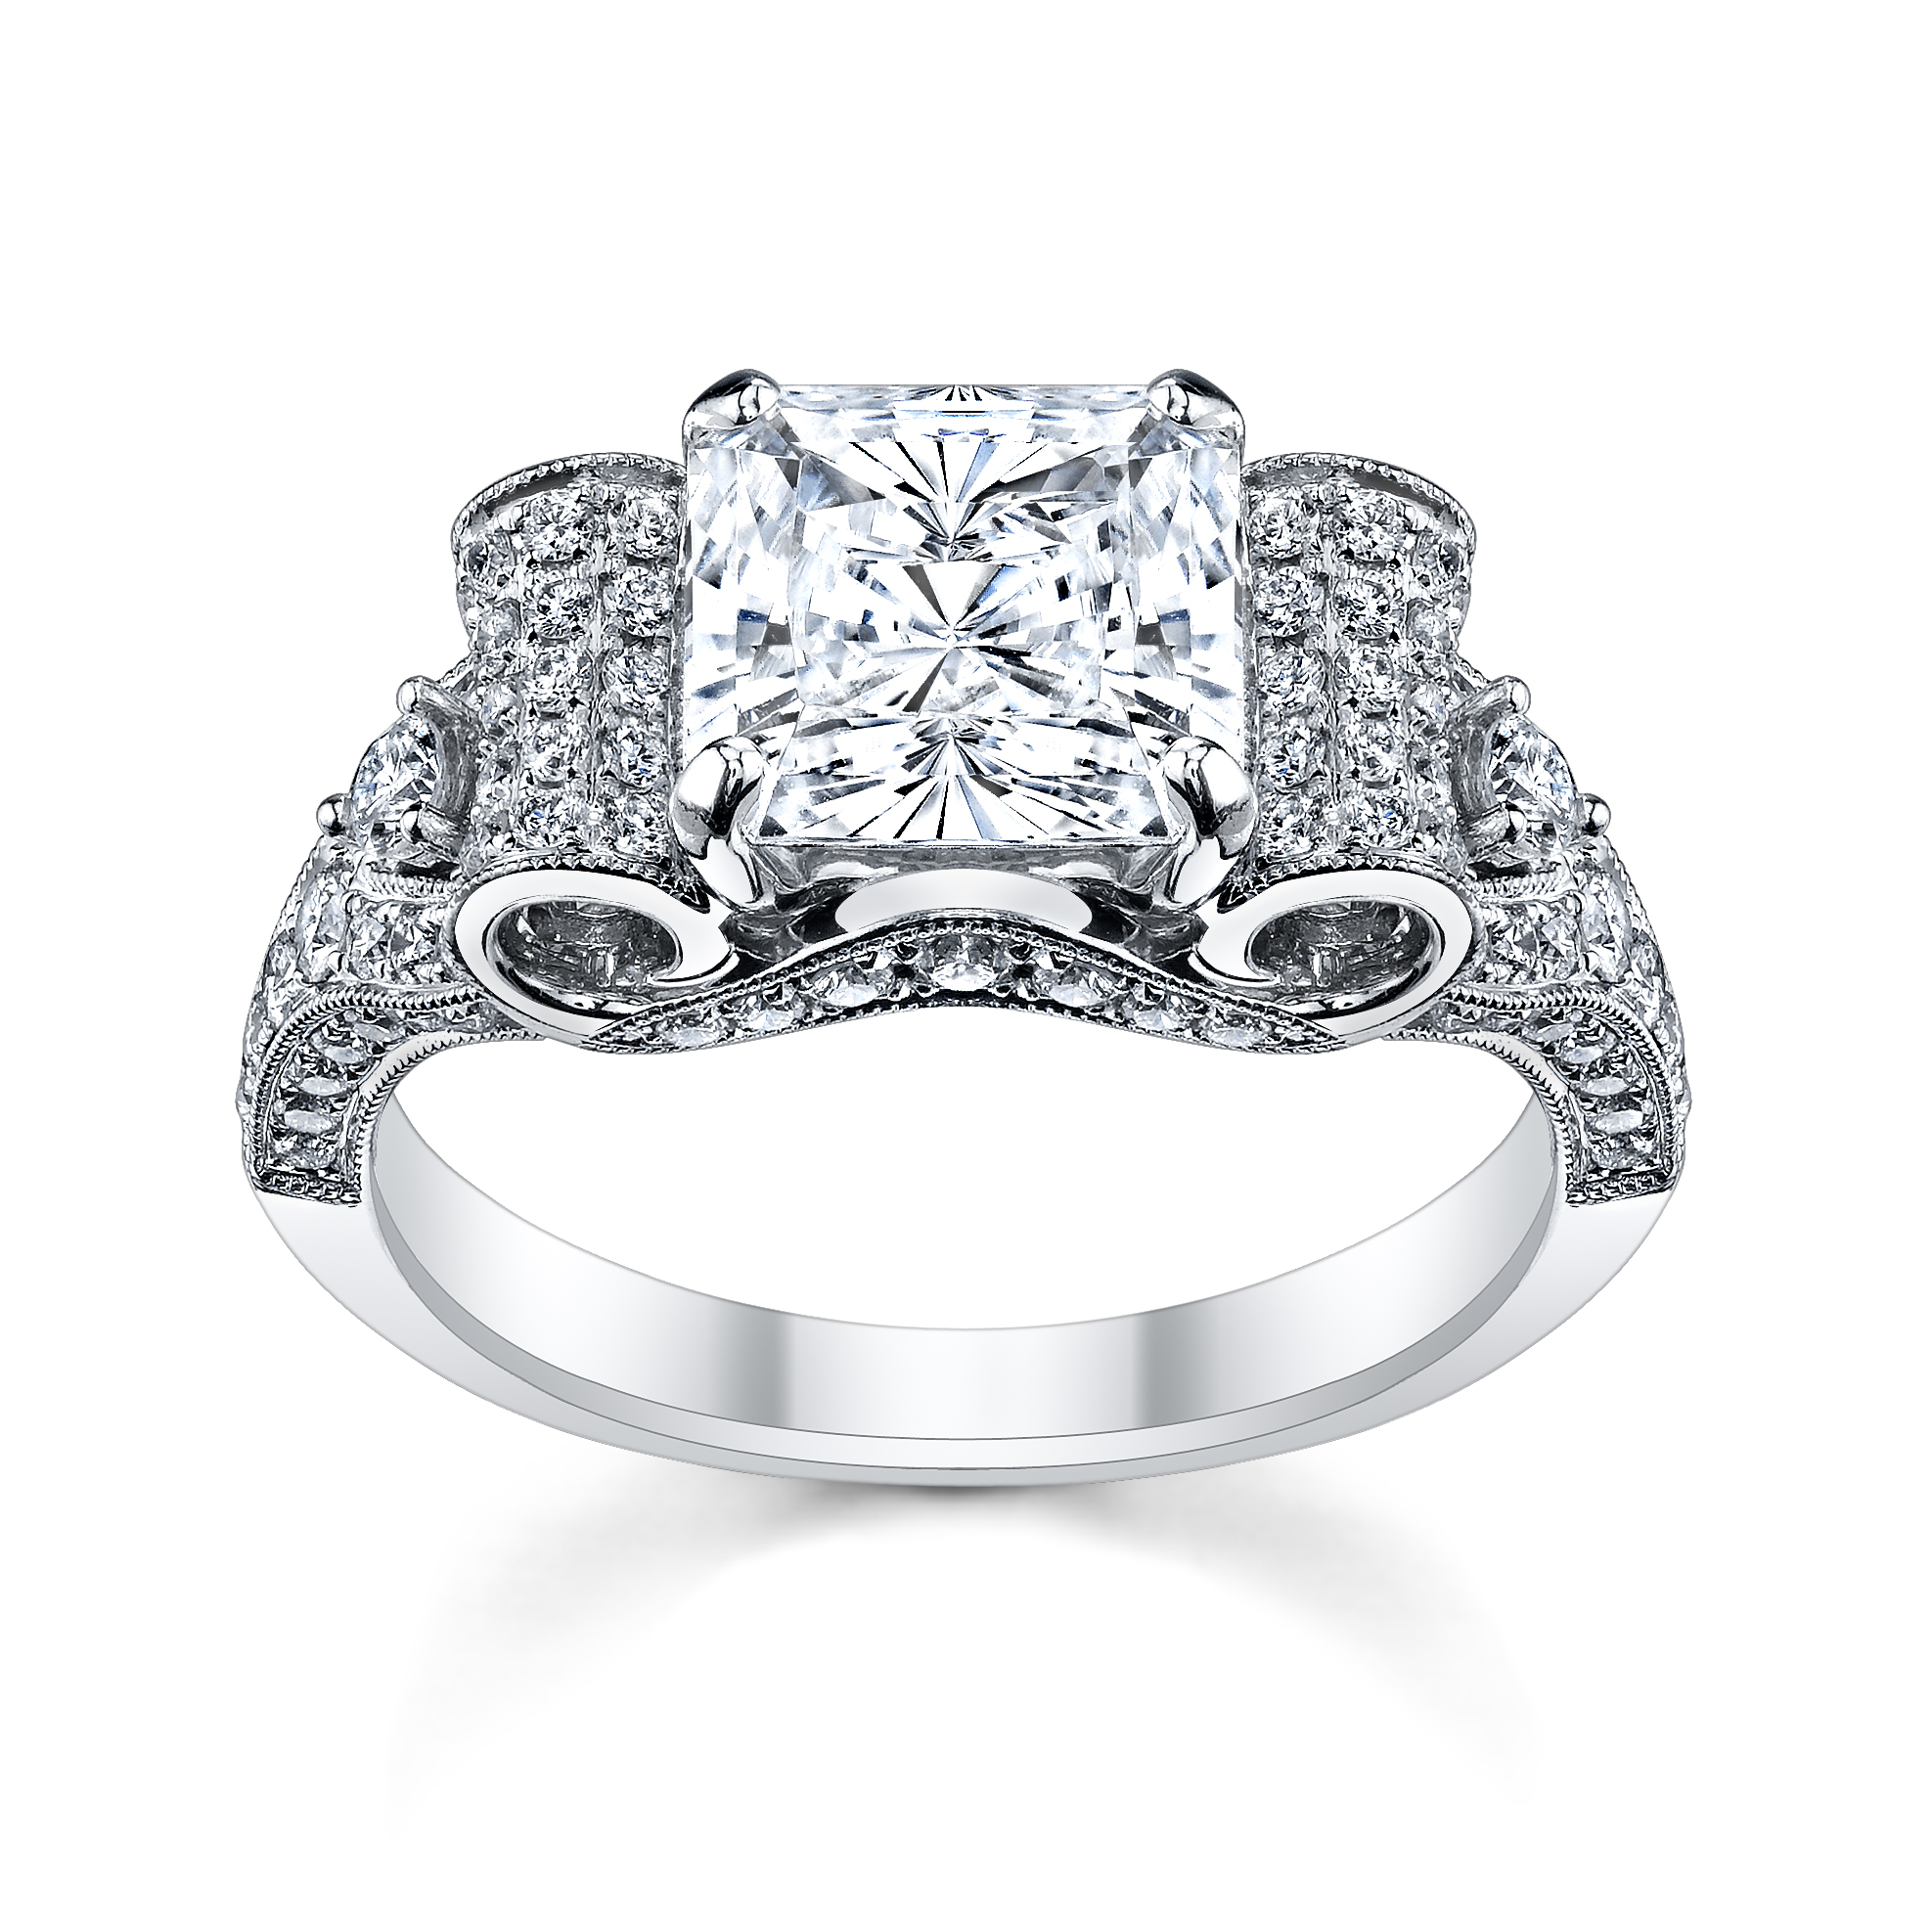 4 Perfect Heart & Bow Diamond Engagement Rings for the Holidays